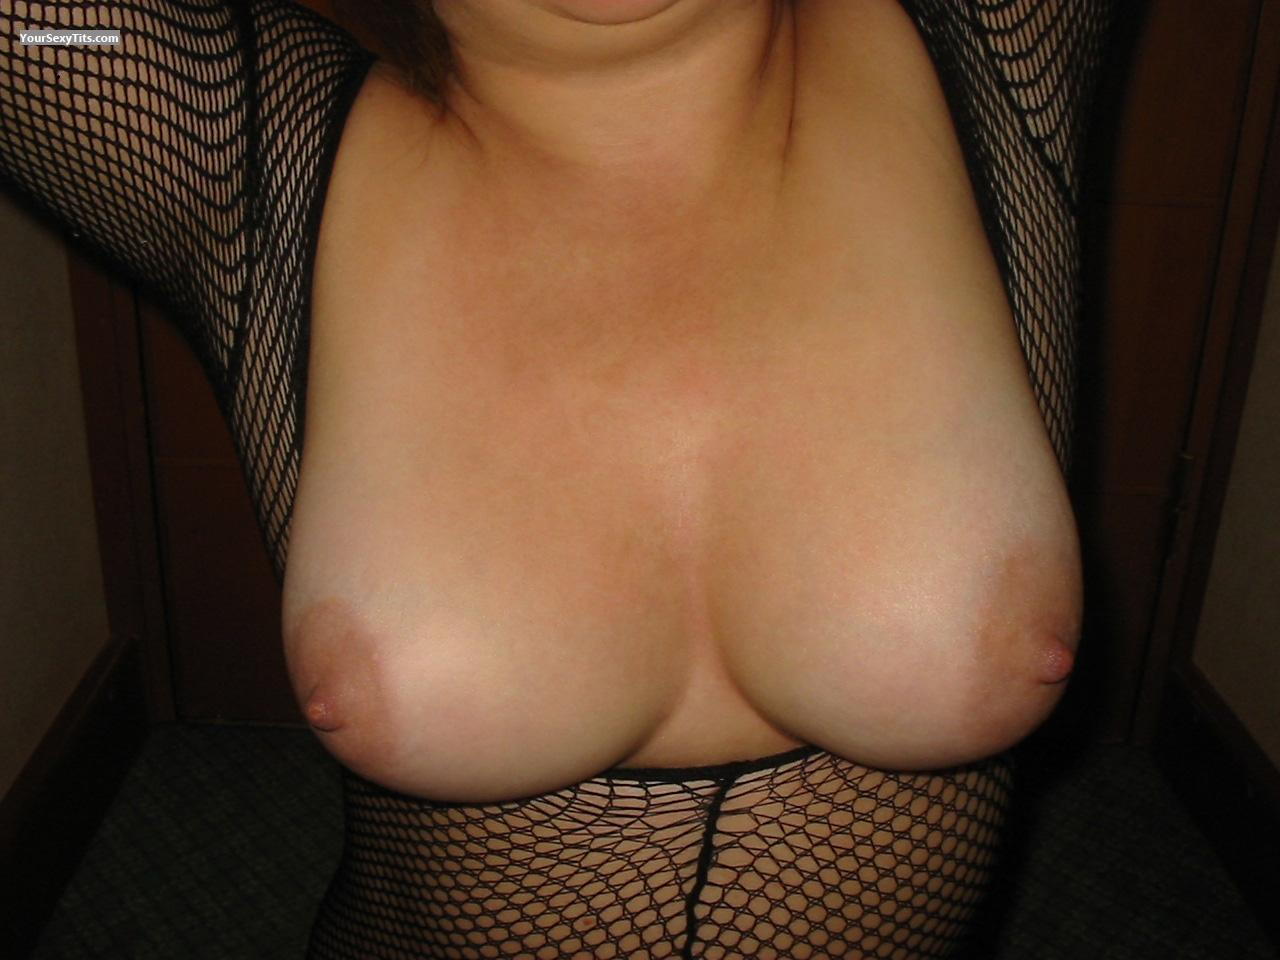 Tit Flash: Big Tits - Angeltrist from Turkey